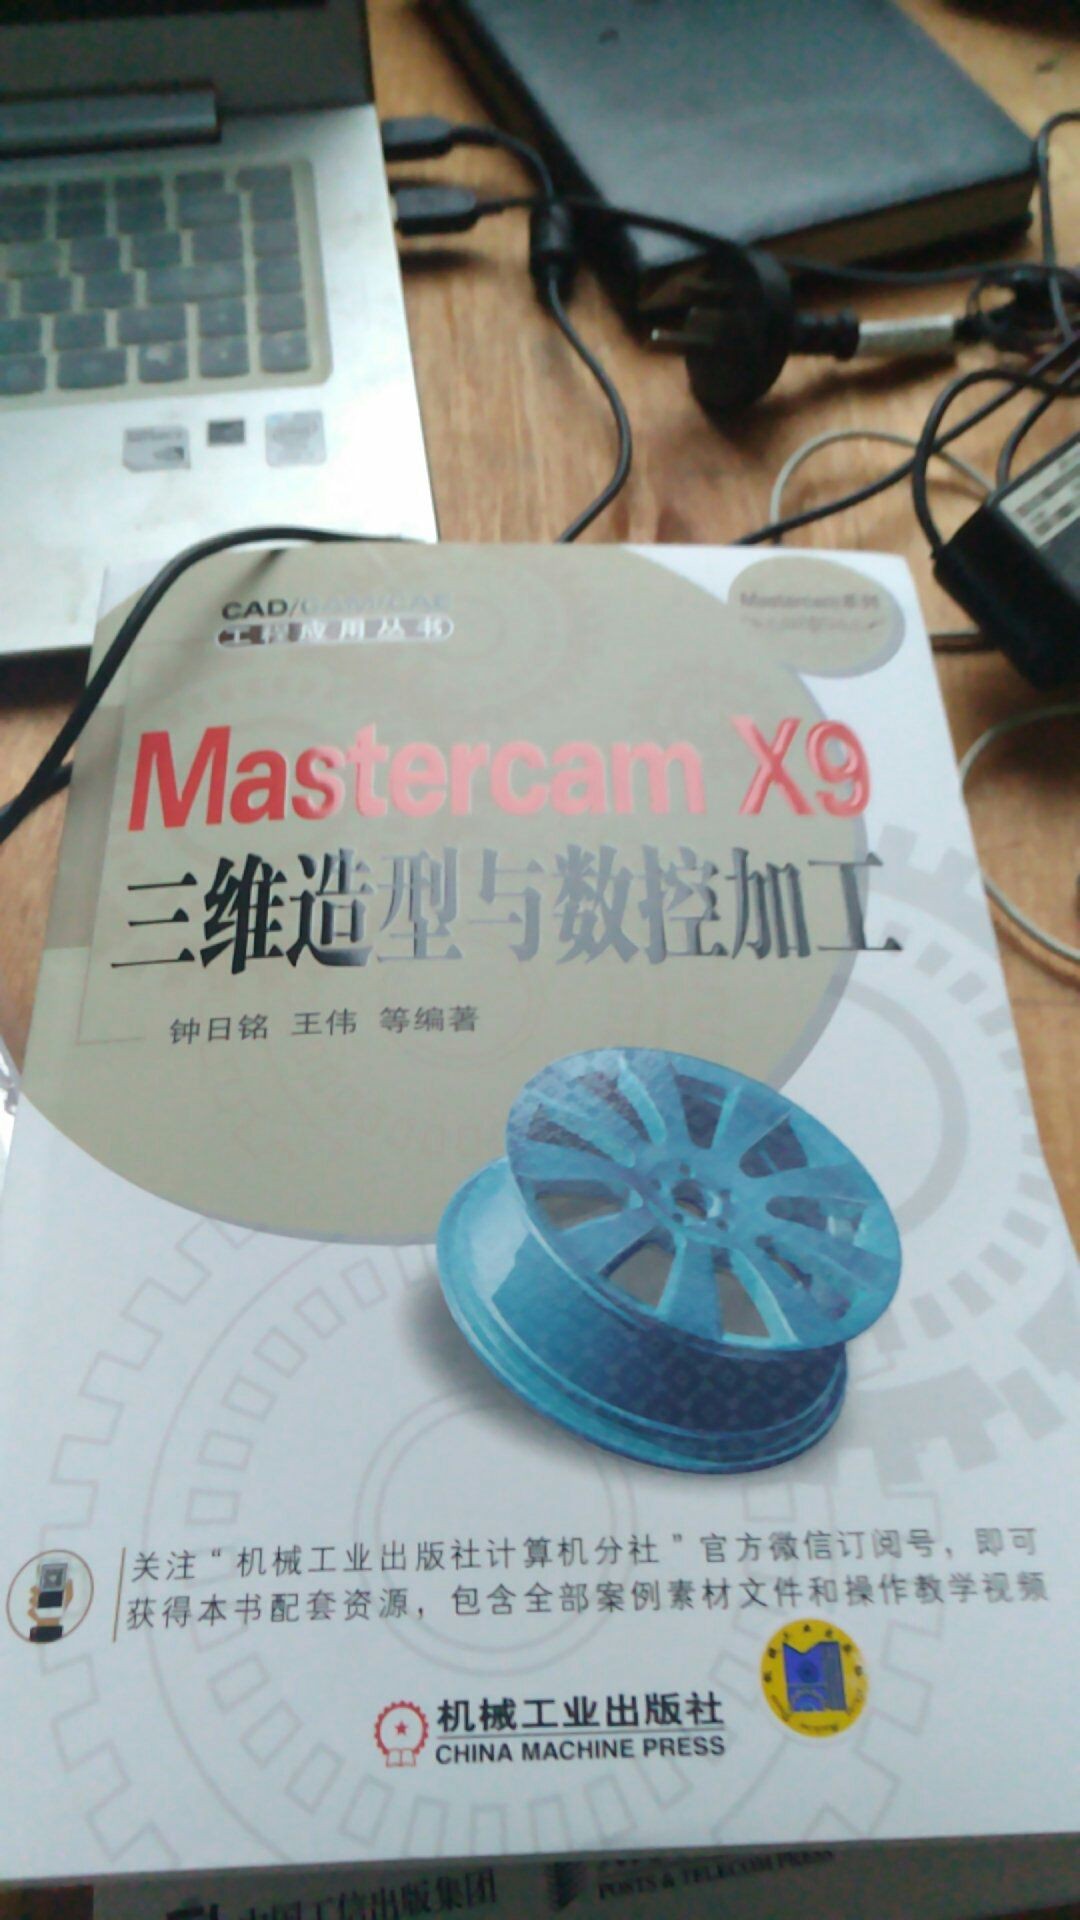 Mastercam X9 3D modeling and CNC machining Chinese version completely  self-taught a three-dimensional modeling CNC machining Mastercam X9  programming